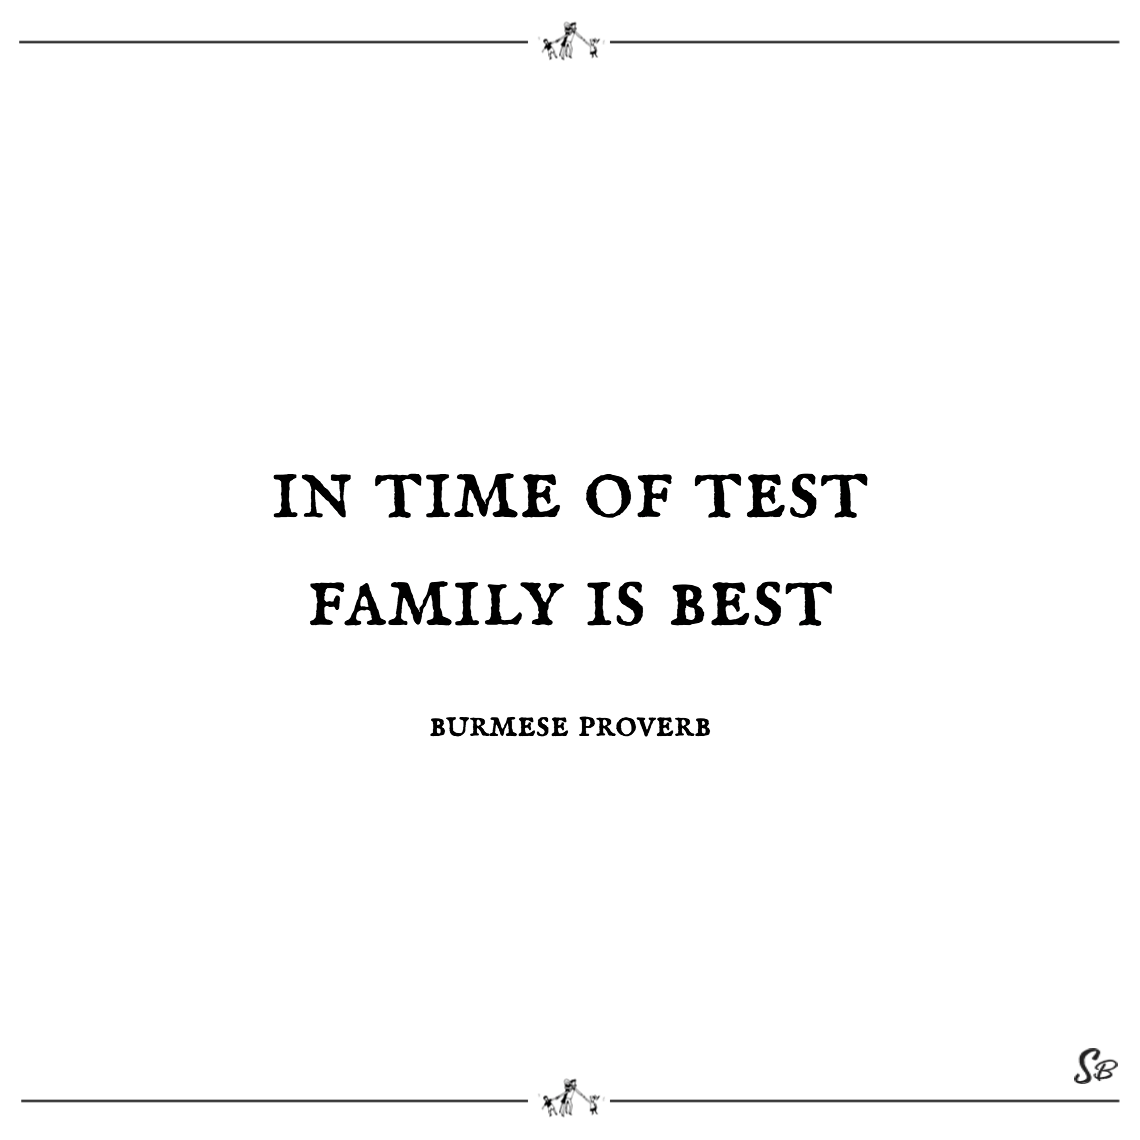 In time of test family is best burmese proverb